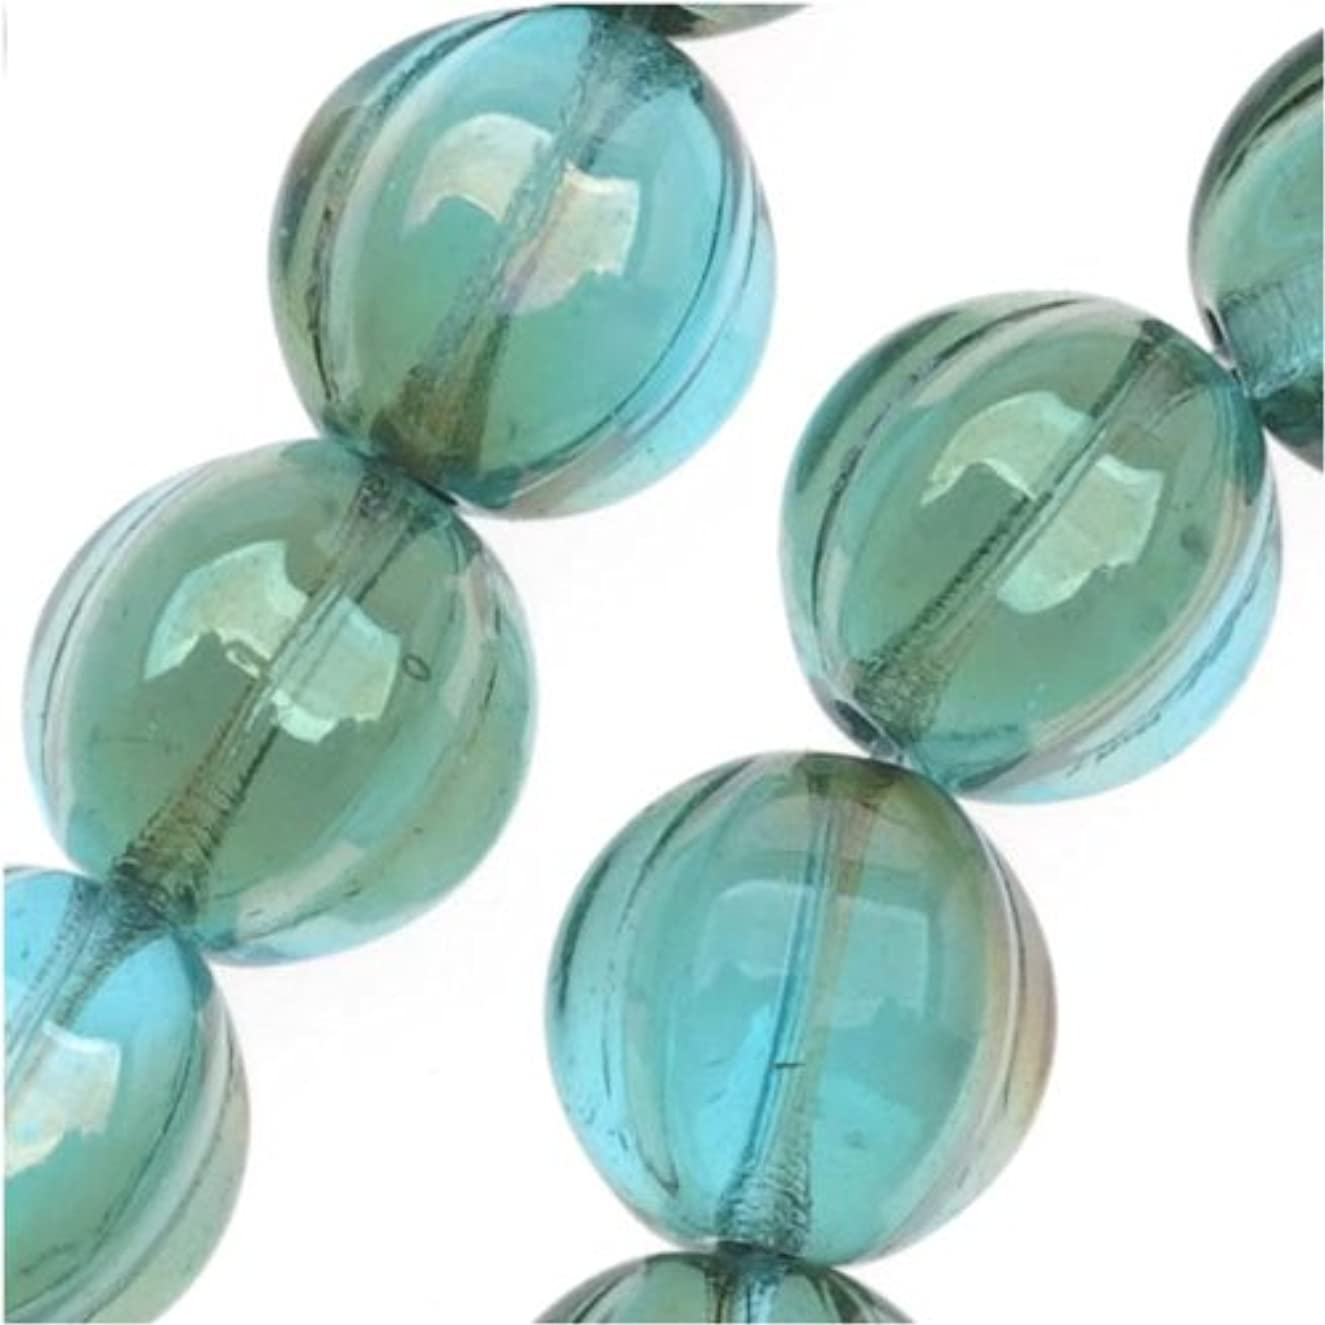 Beadaholique Czech Pressed Glass 25-Piece Round Melon Beads, 8mm Diameter, Aquamarine Celsian